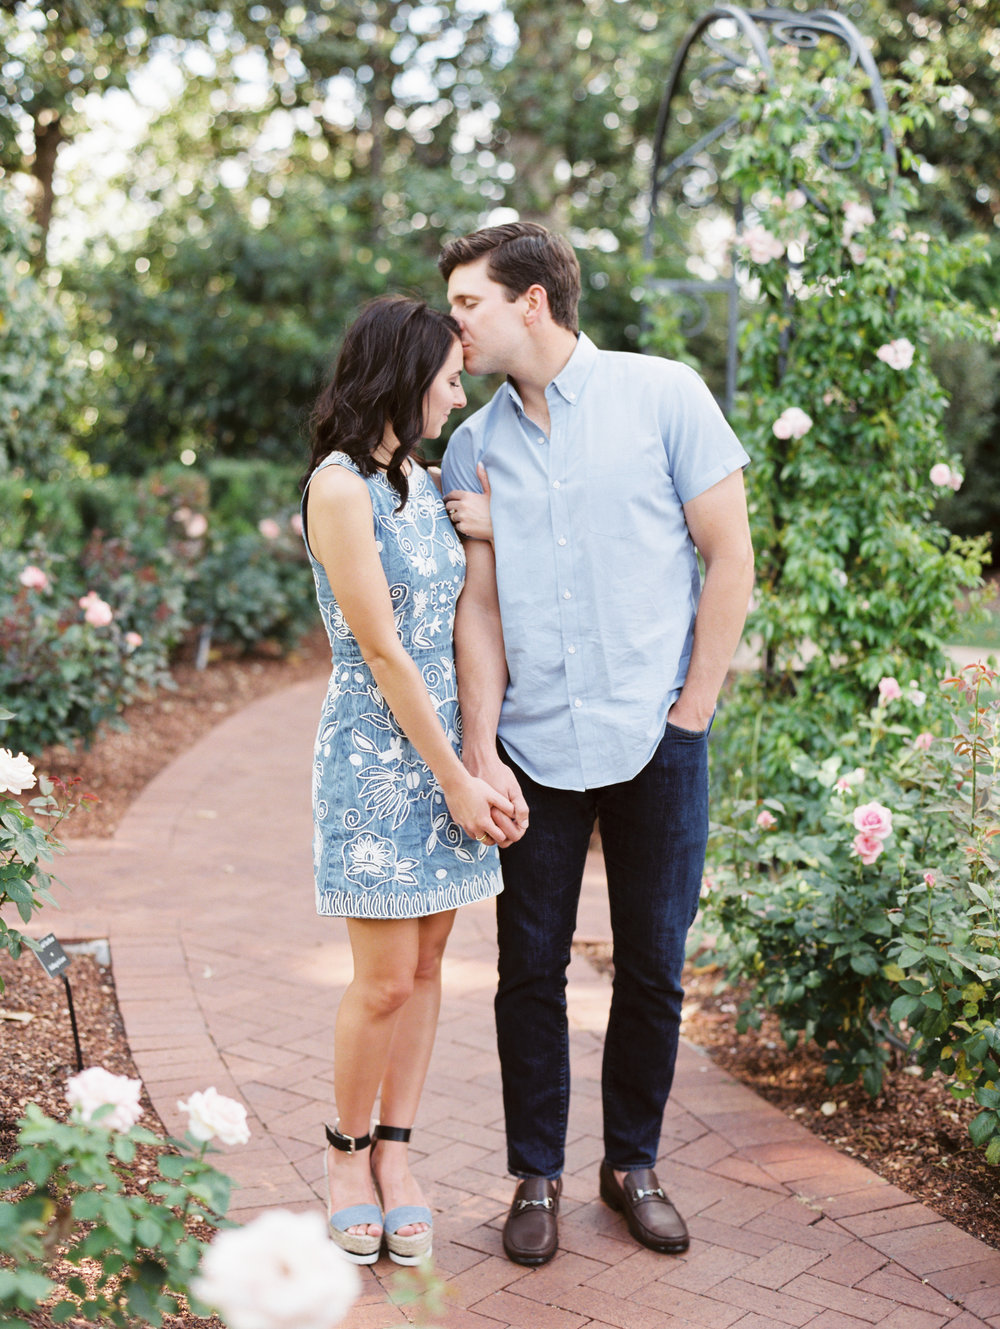 dallas-texas-dallas-arboretum-botanical-garden-engagements-ar-photography-teresa-rowan-149.jpg